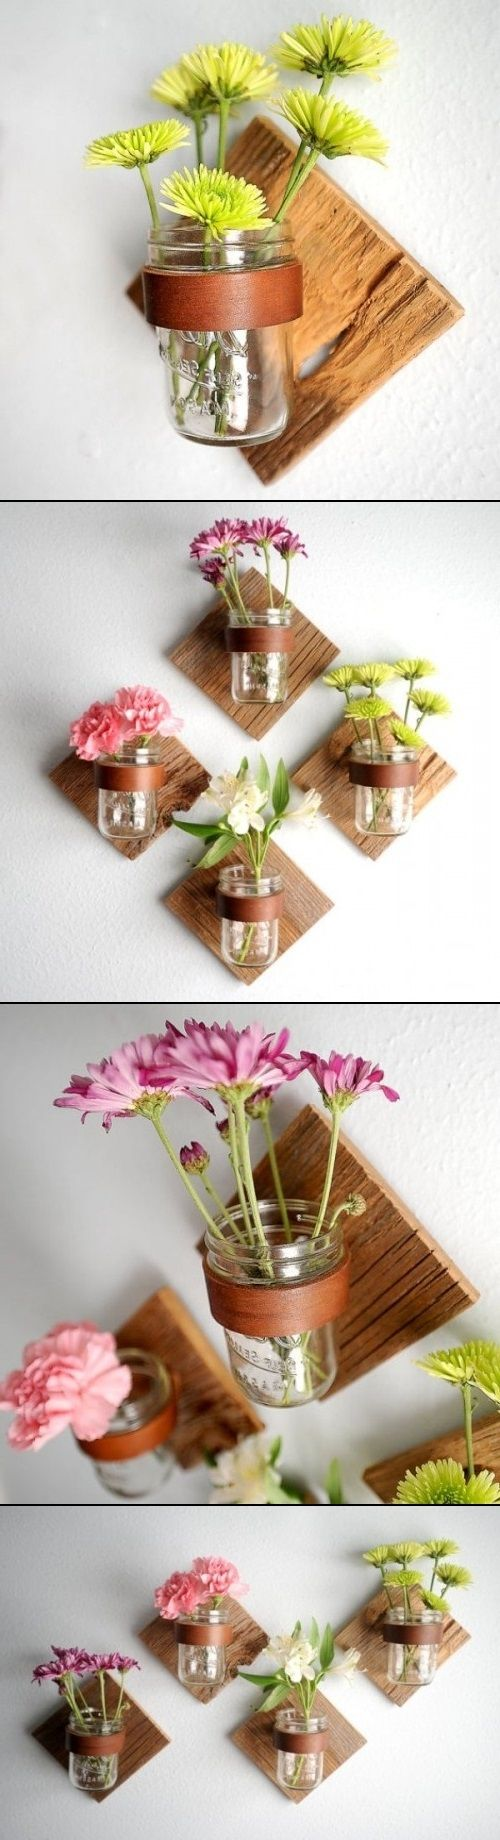 DIY Rustic Mason Jar Sconce ideas